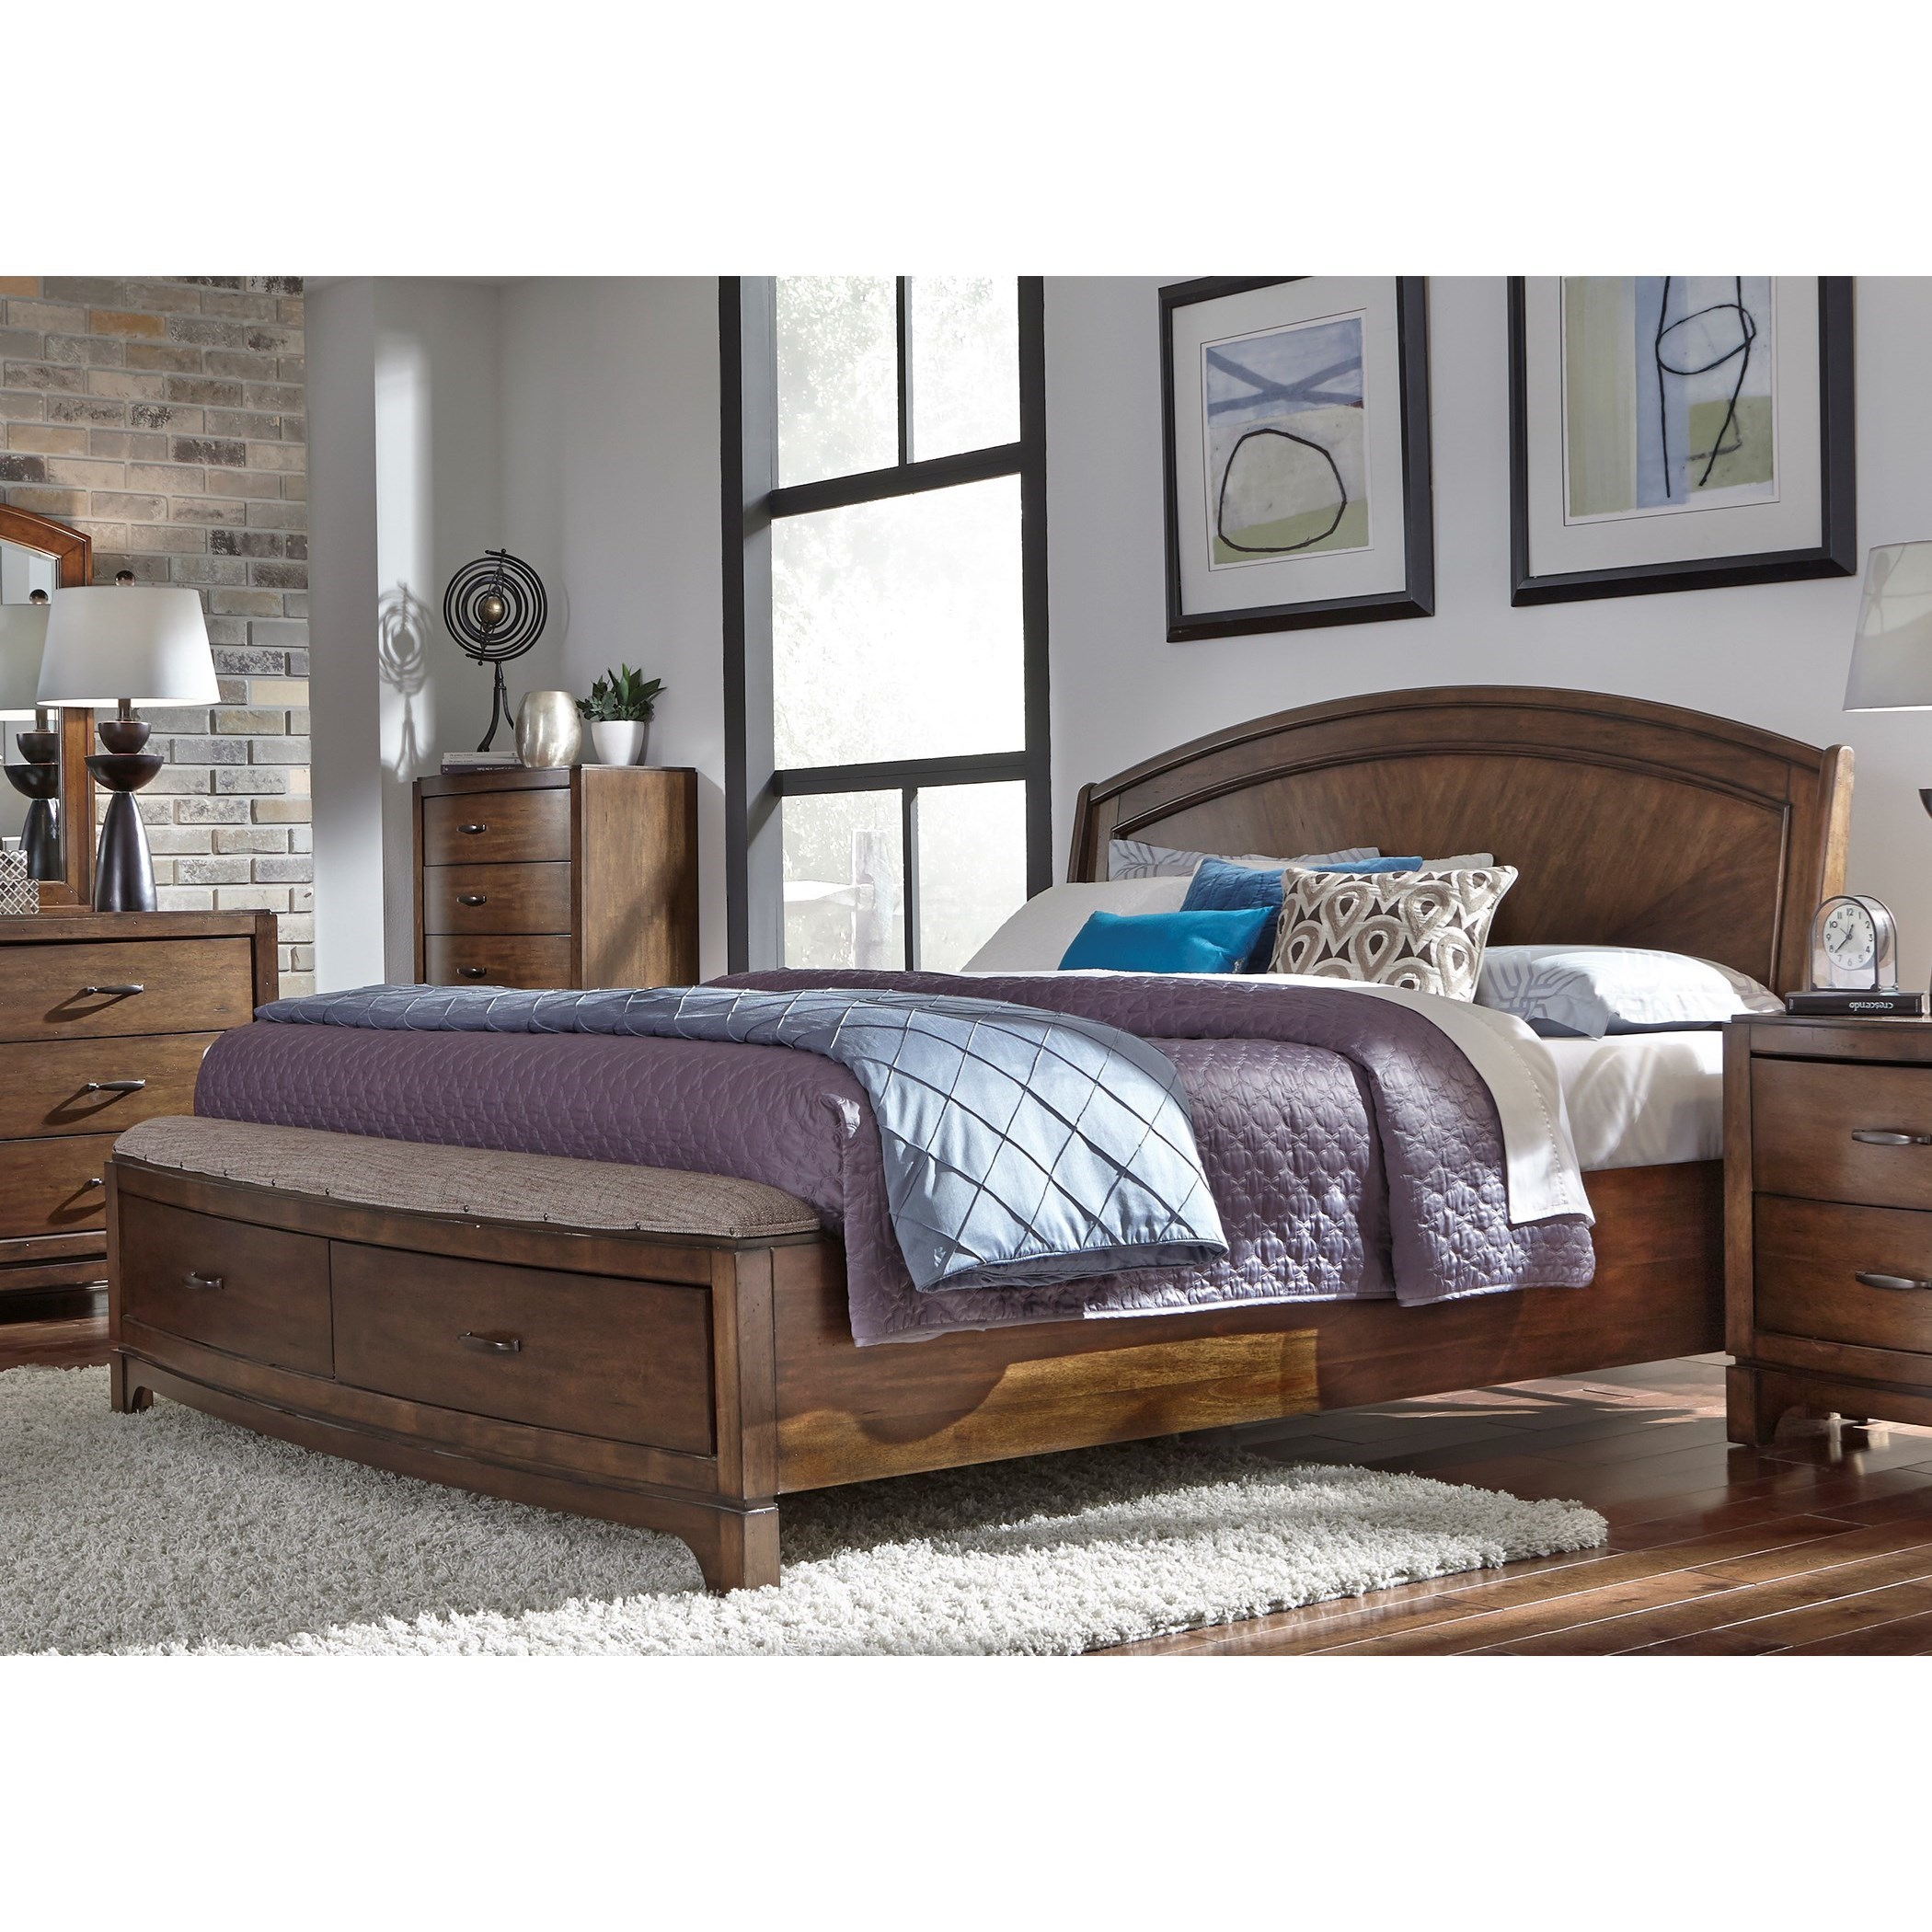 Avalon III Queen Panel Storage Bed by Liberty Furniture at Standard Furniture